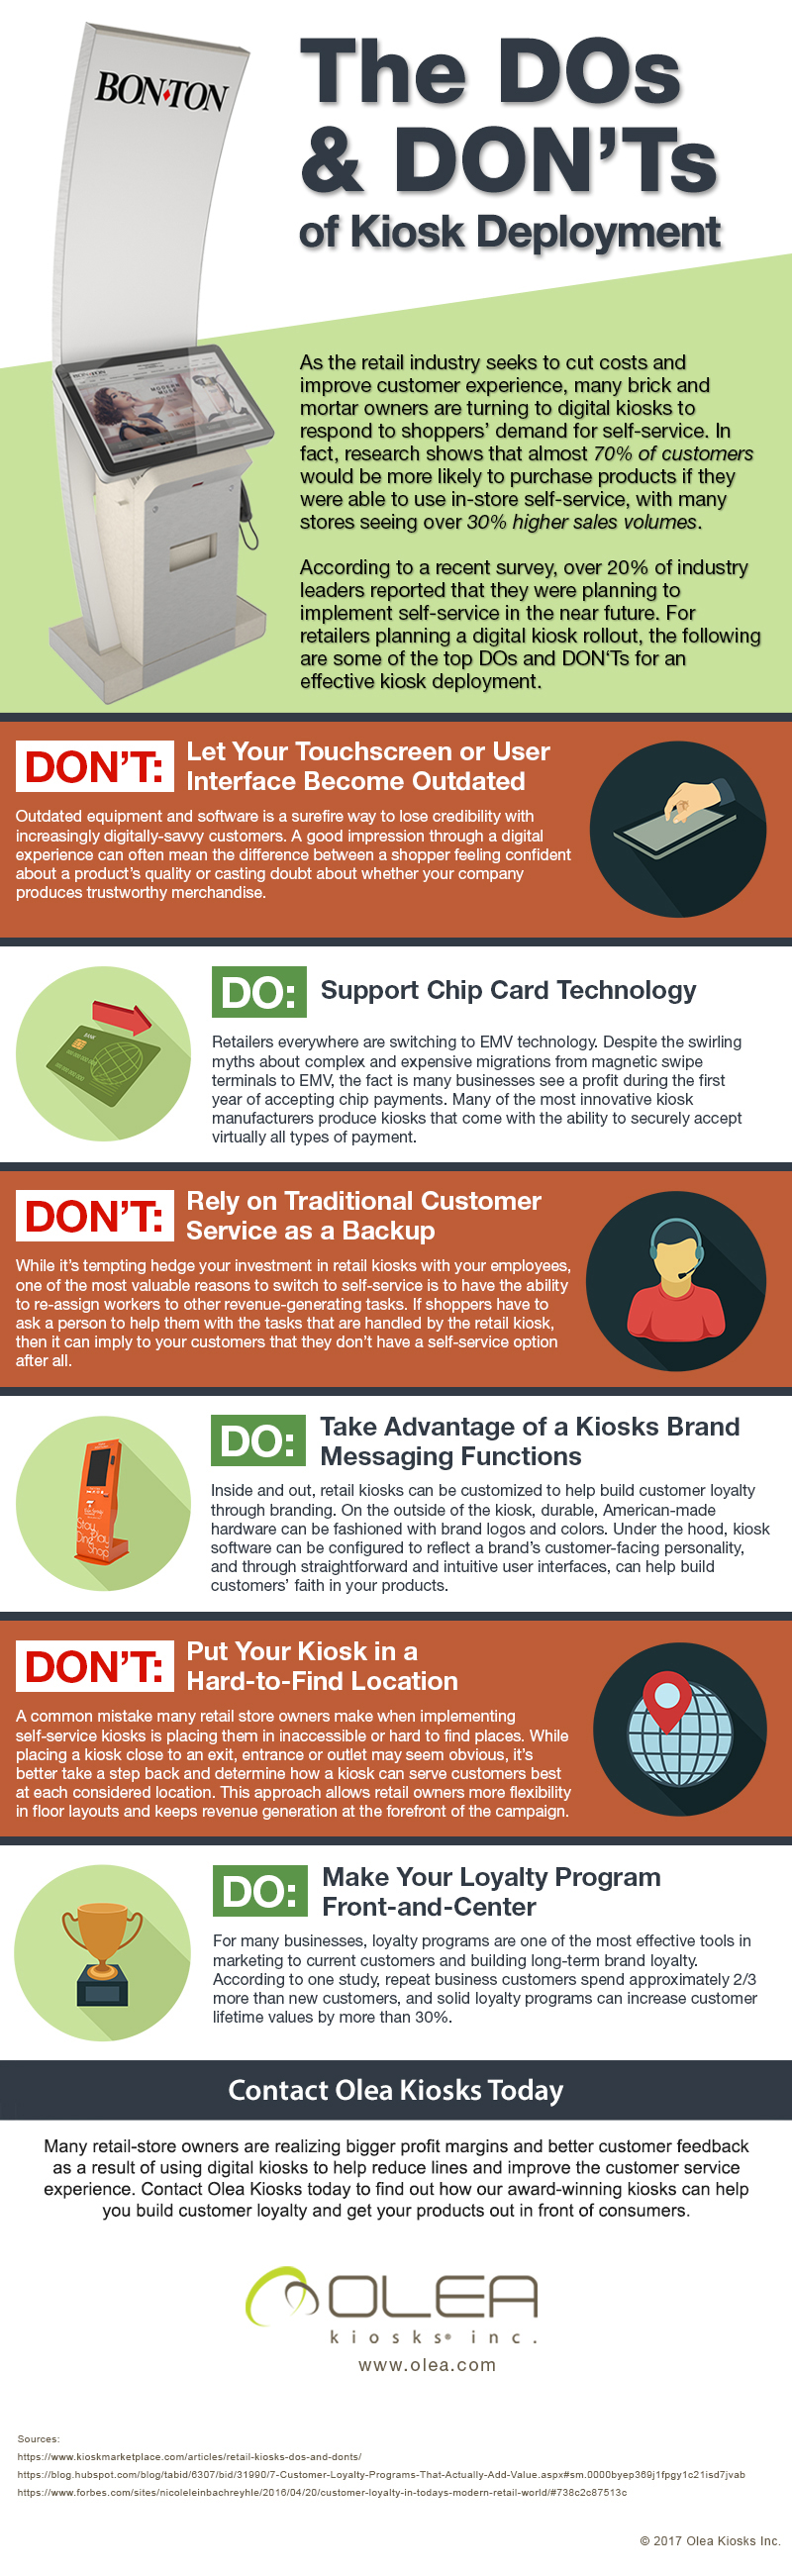 The Do's and Don'ts of Retail Kiosk Implementation